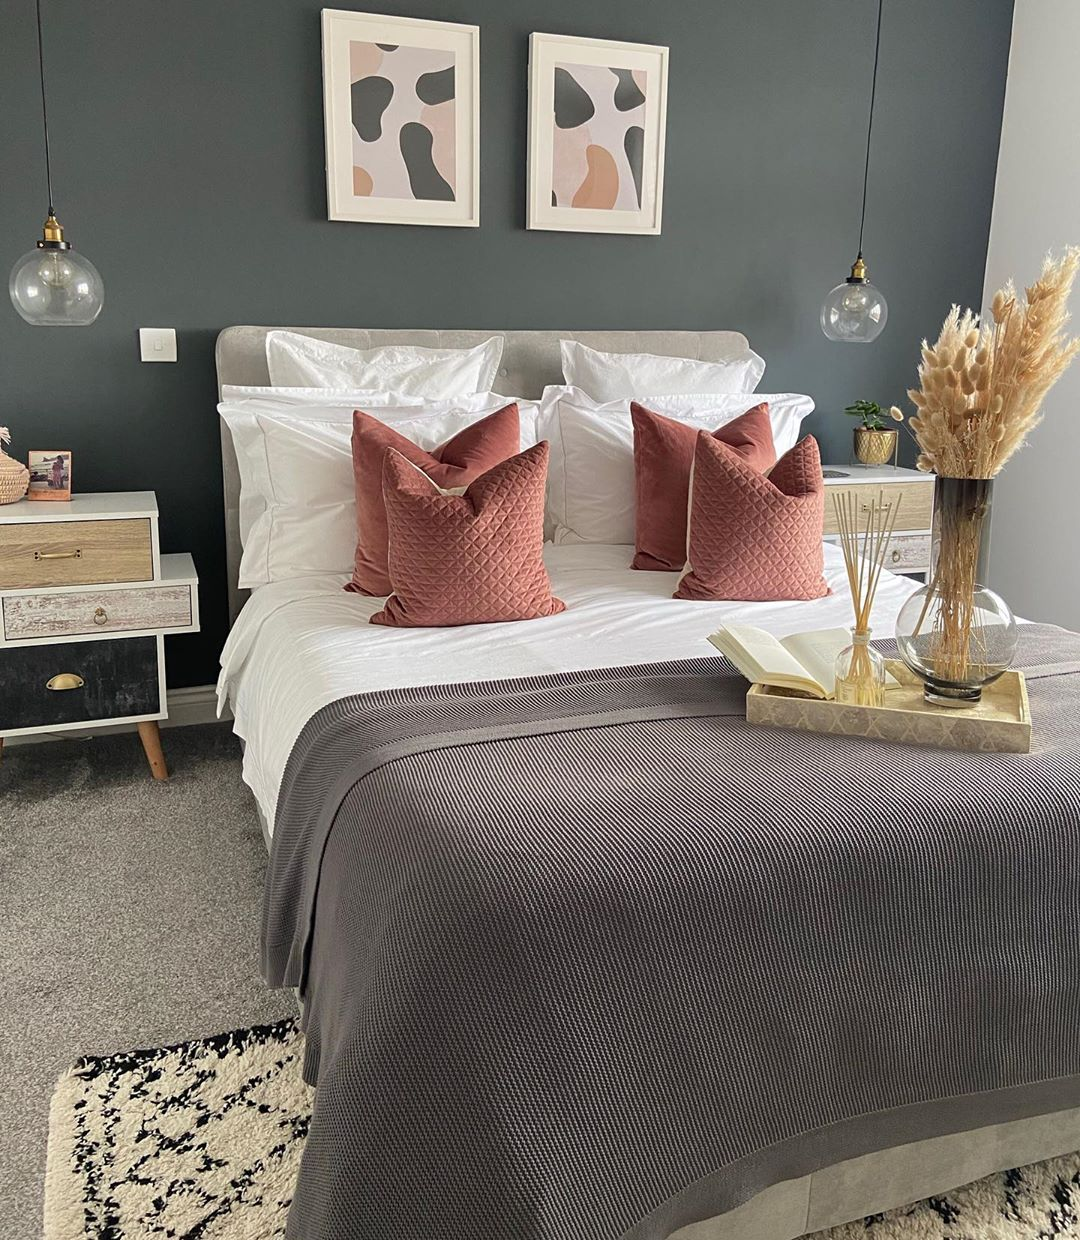 How To Make Your Bed At Home Like A Luxury Hotel